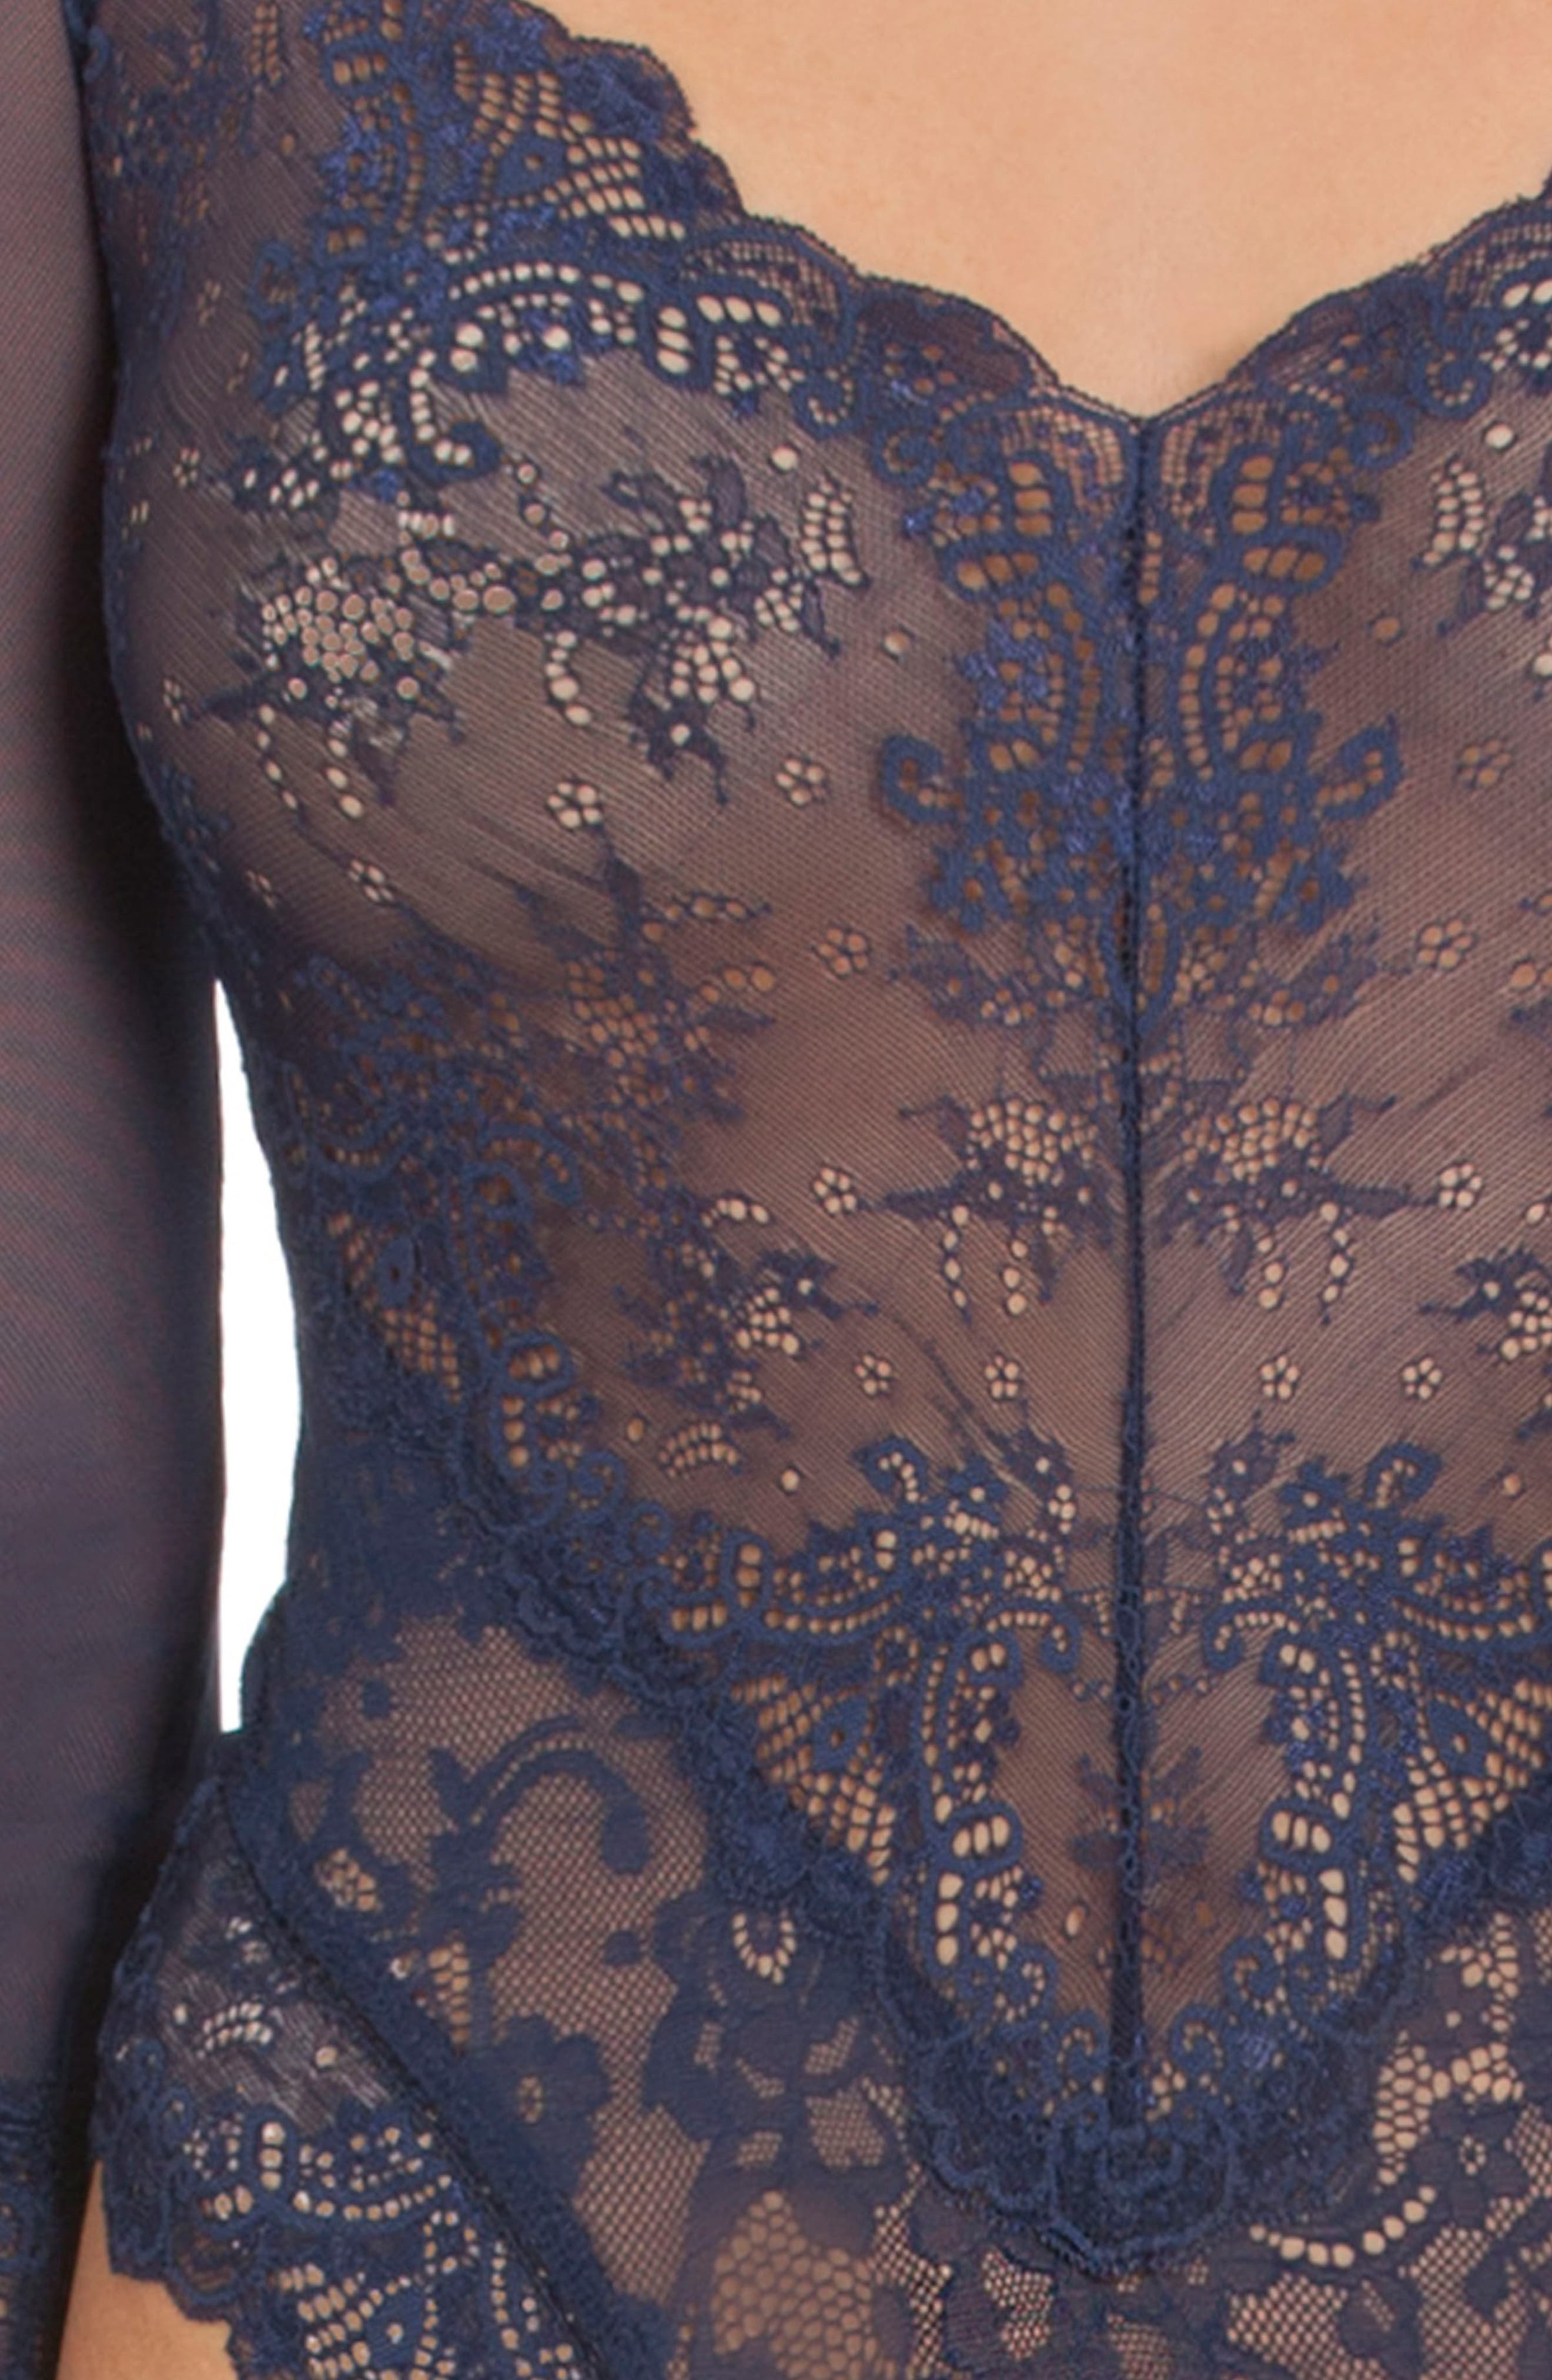 Thong Lace Teddy,                             Alternate thumbnail 4, color,                             400